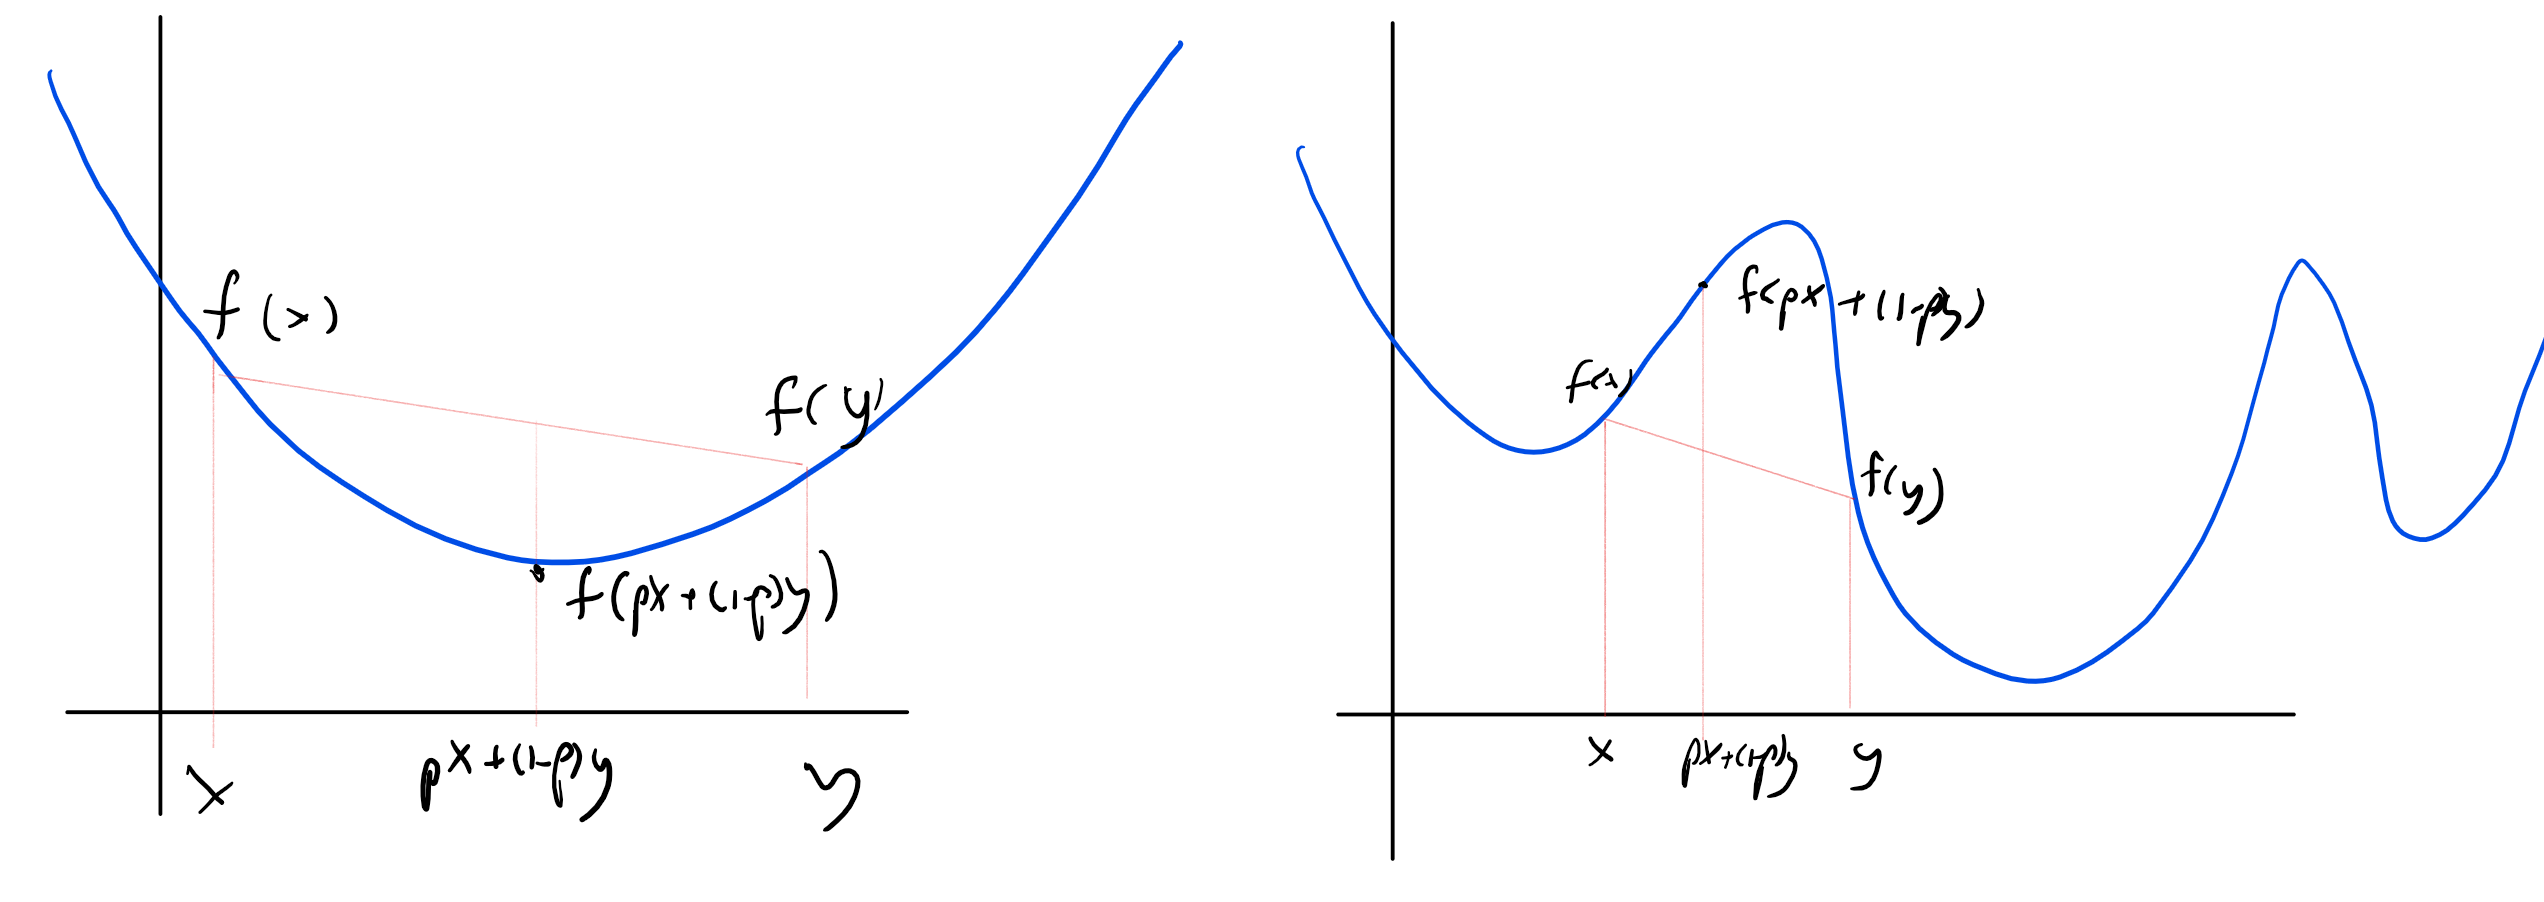 In a convex function f (left figure), for every x and y and p\in [0,1] it holds that f(px+(1-p)y) \leq p\cdot f(x)+(1-p)\cdot f(y). In particular this means that every local minimum of f is also a global minimum. In contrast in a non convex function there can be many local minima.